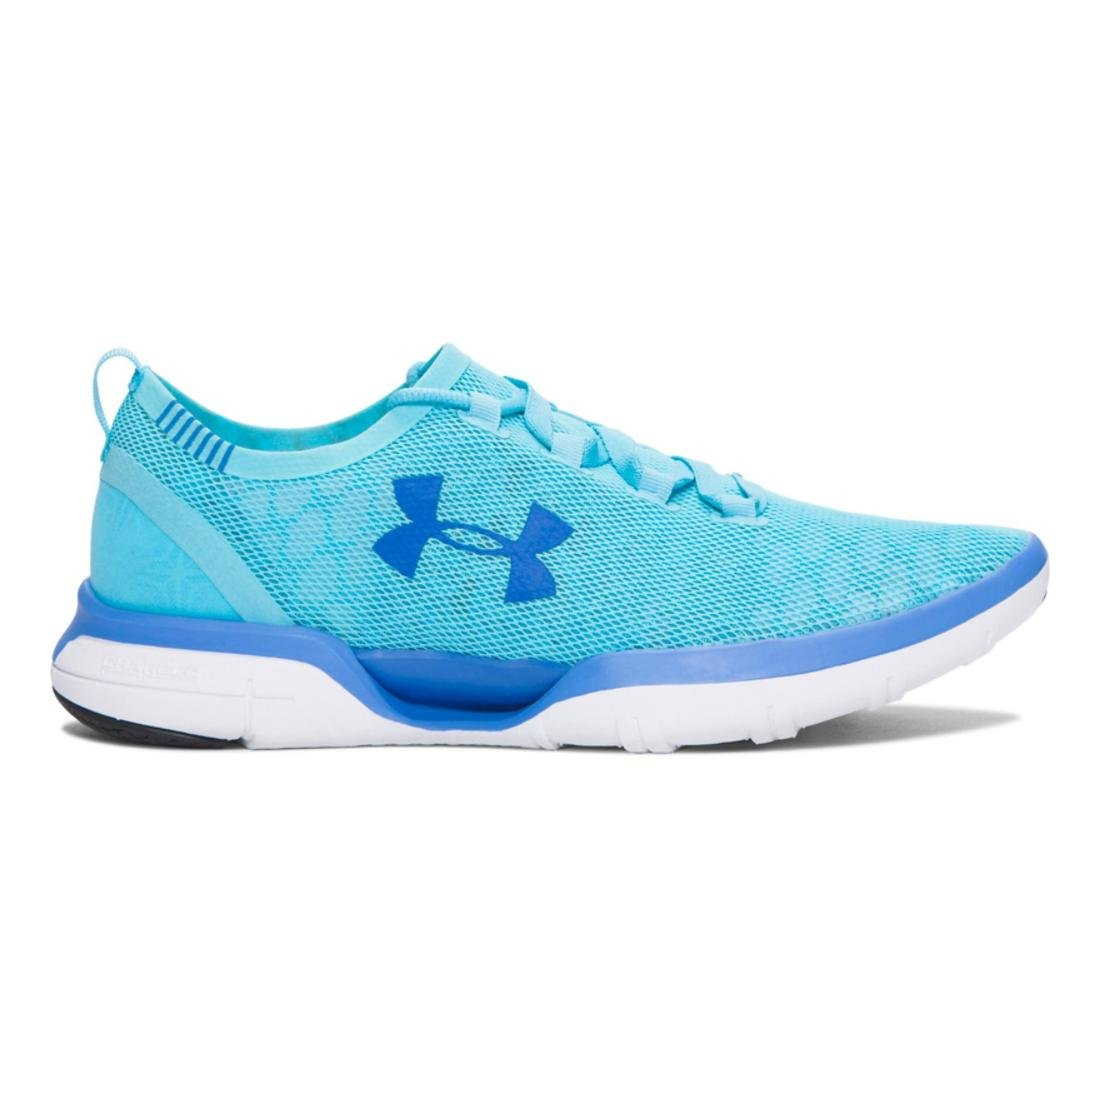 Under Armour Women's B(M) Charged CoolSwitch Running Shoe B01GQK72Q2 5.5 B(M) Women's US|Venetian Blue/White/Mediterranean f7fcaf